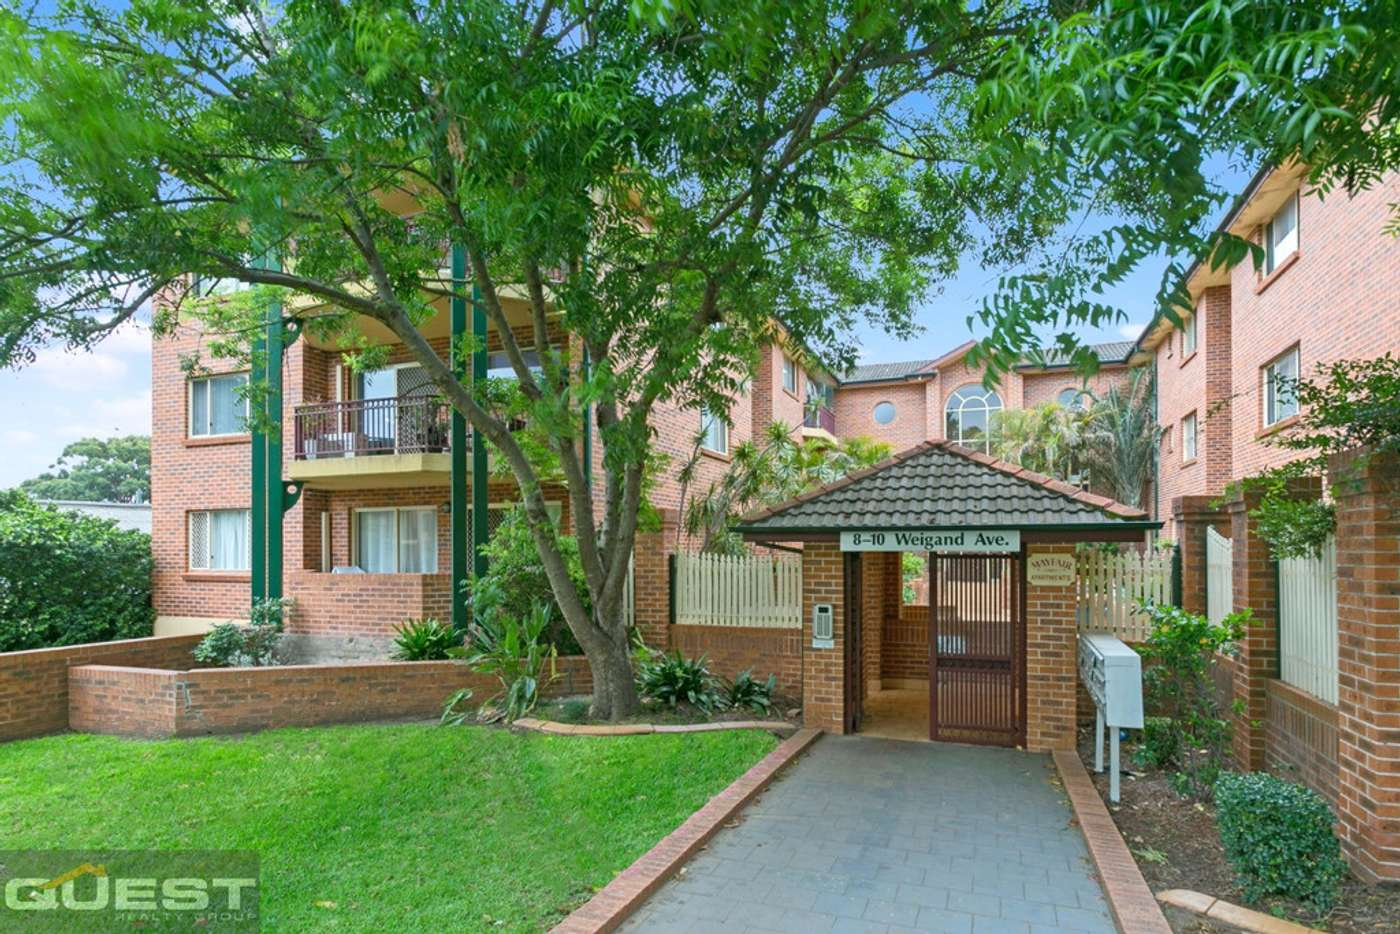 Main view of Homely unit listing, 3/8 Weigand Avenue, Bankstown NSW 2200